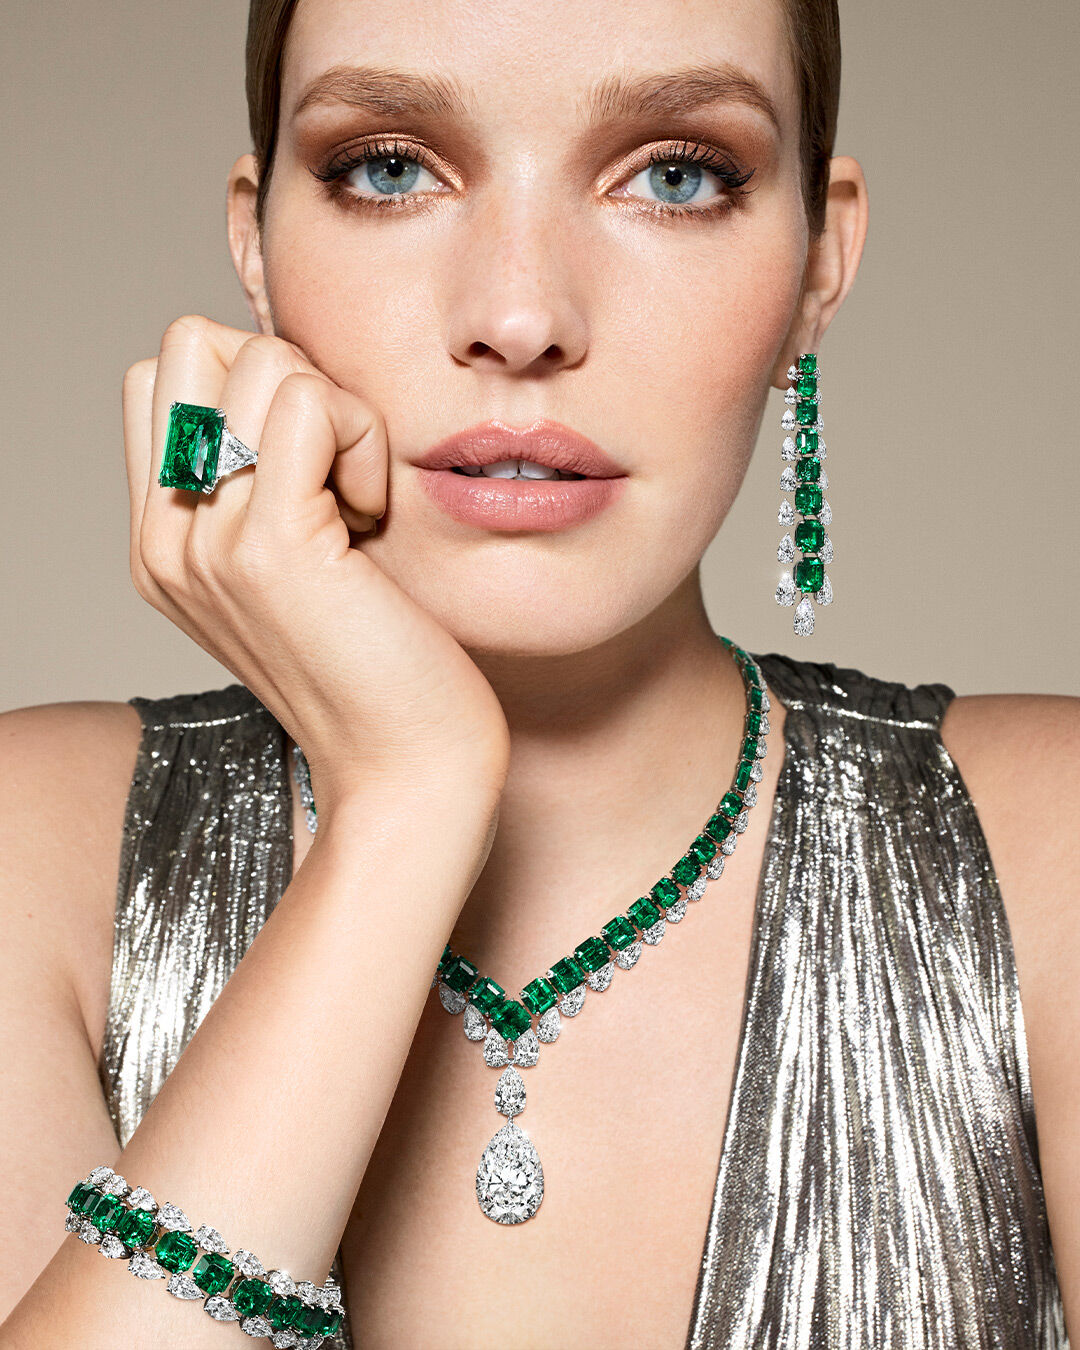 Model wears Graff emerald and white diamond high jewellery